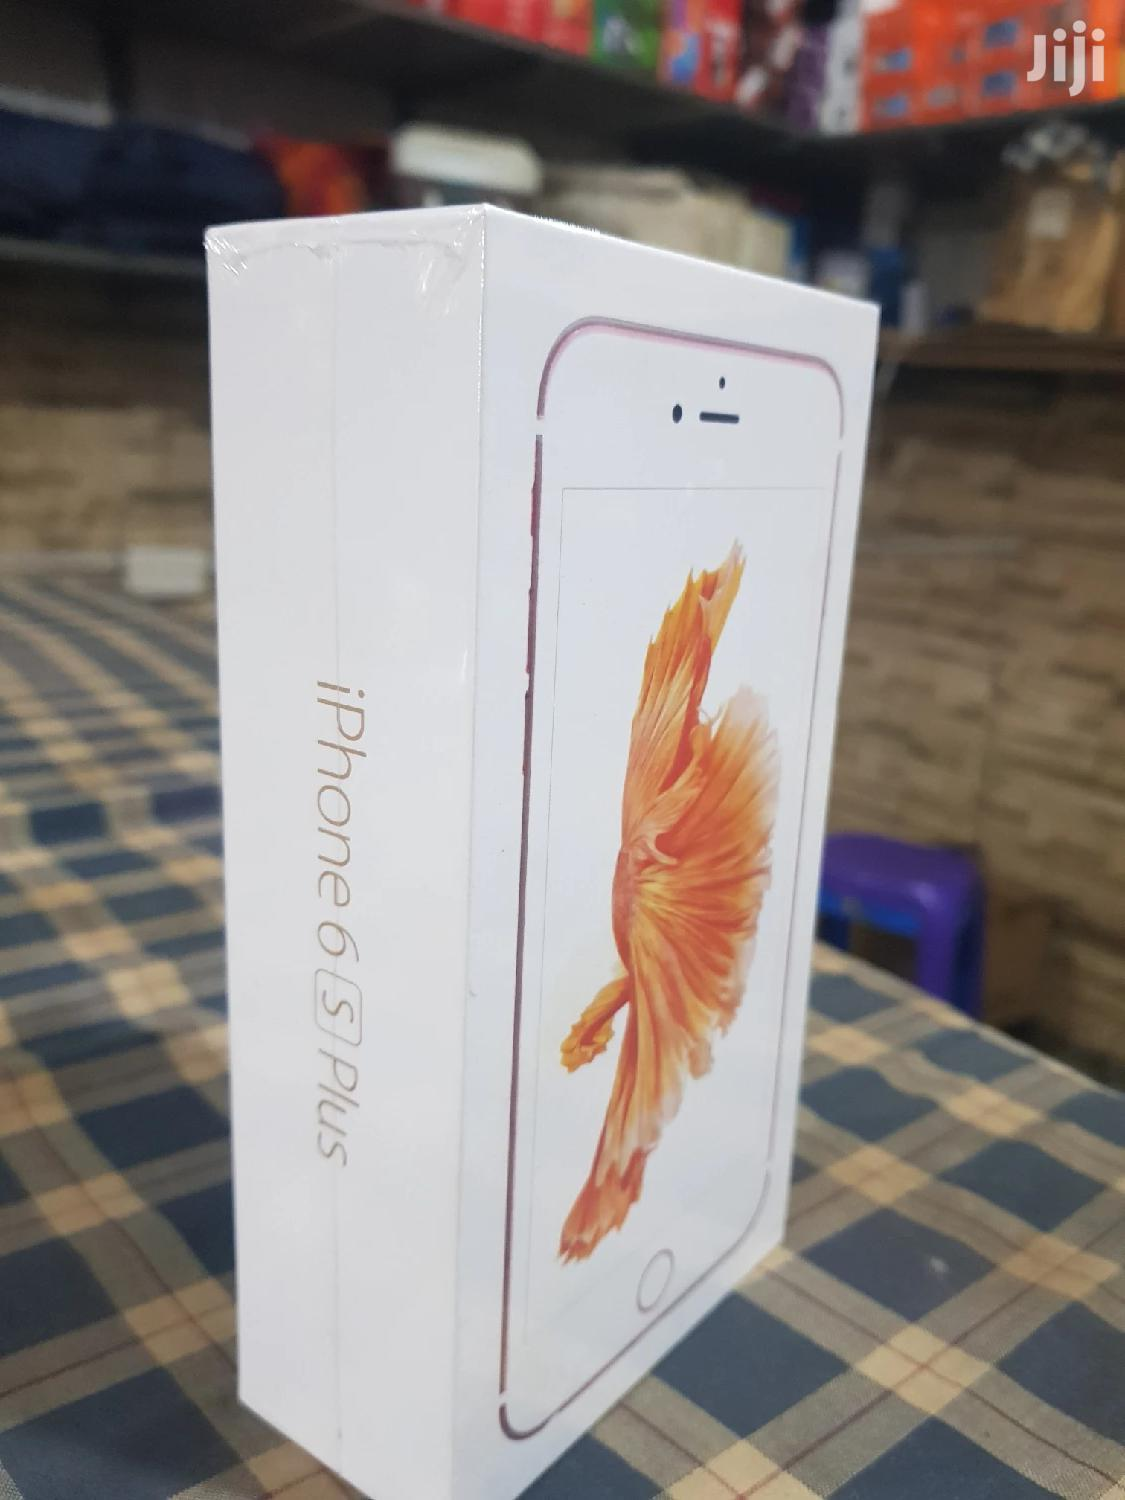 New Apple iPhone 6s Plus 64 GB Gold   Mobile Phones for sale in Accra Metropolitan, Greater Accra, Ghana